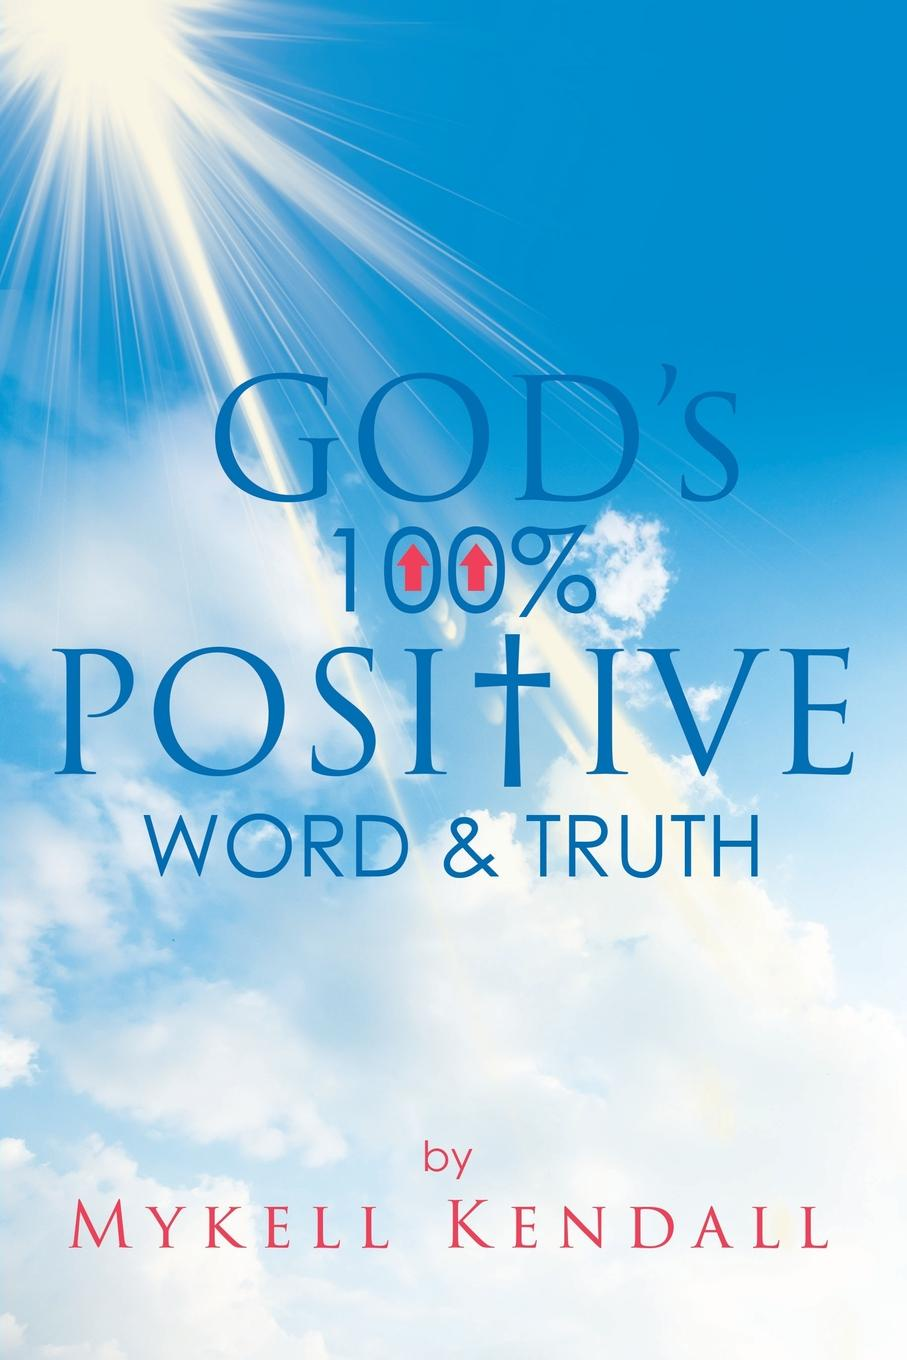 Mykell Kendall God.s 100. Positive Word and Truth mykell kendall god s 100 positive word and truth